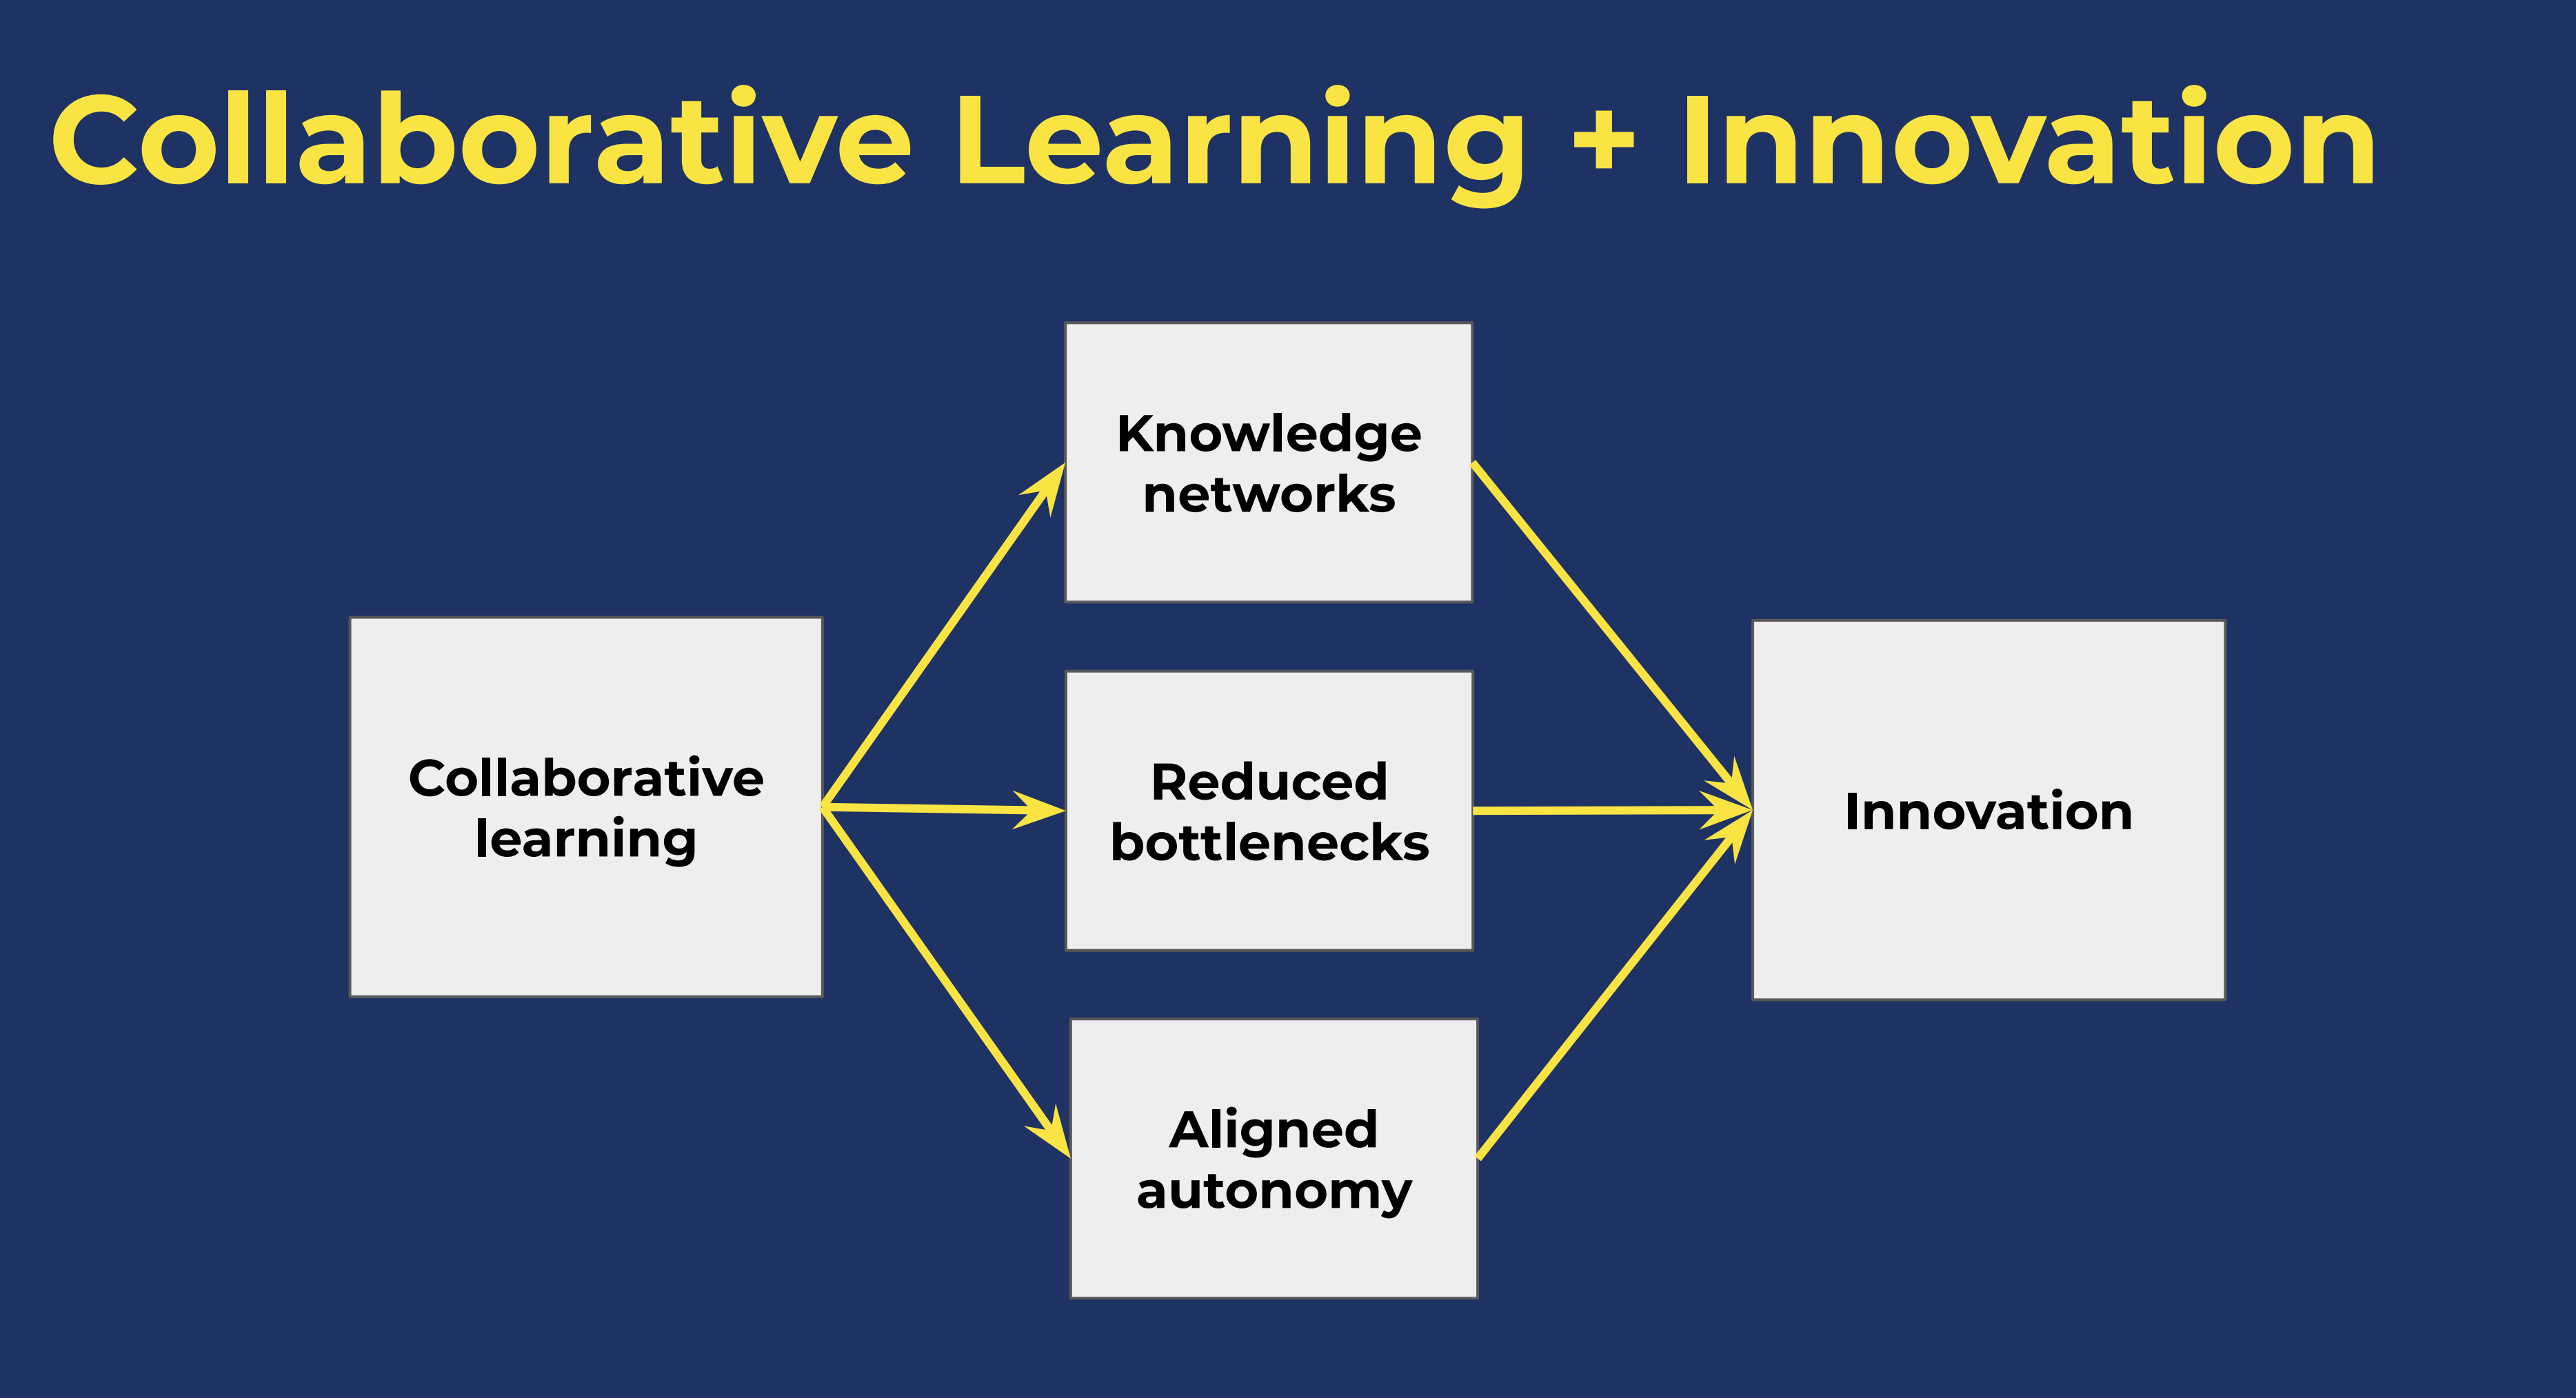 Collaborative Learning through Peer to Peer Learning is Helping Spotify Speed Up Innovation